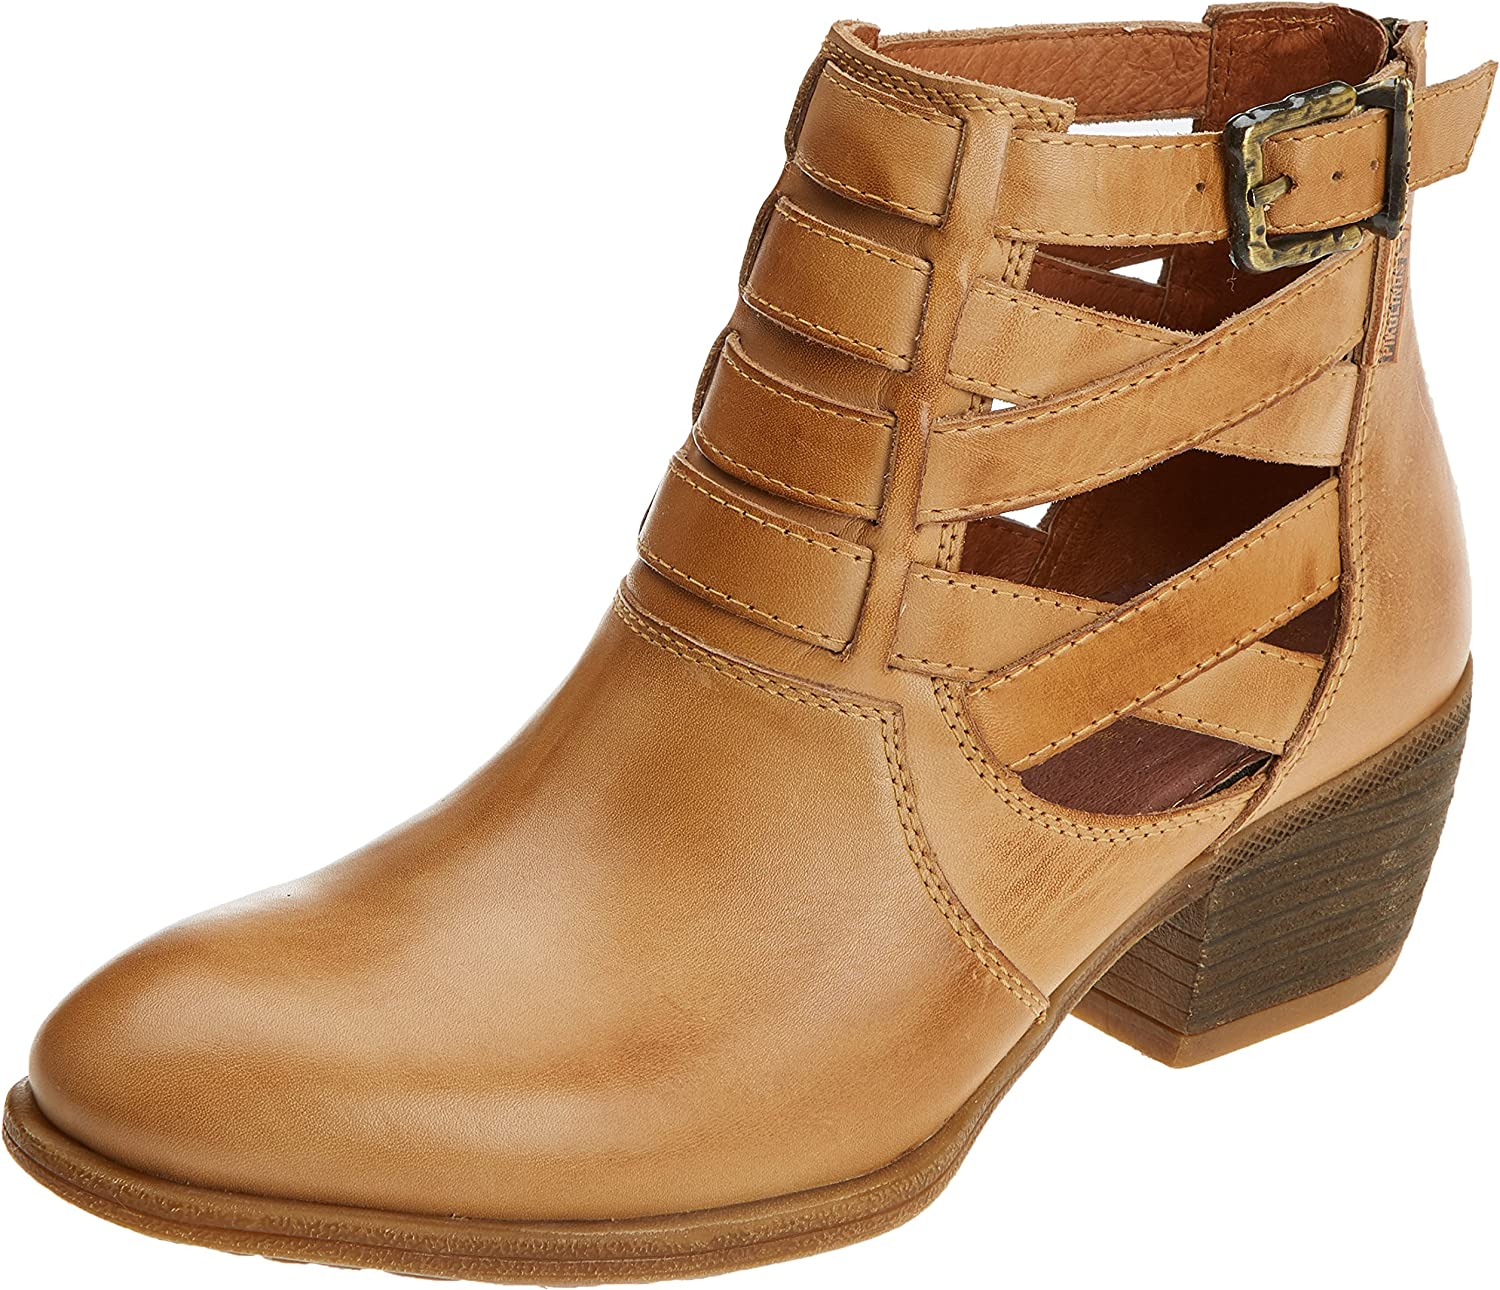 Pikolinos W9M-5766 Women's Ankle Boot Ivory